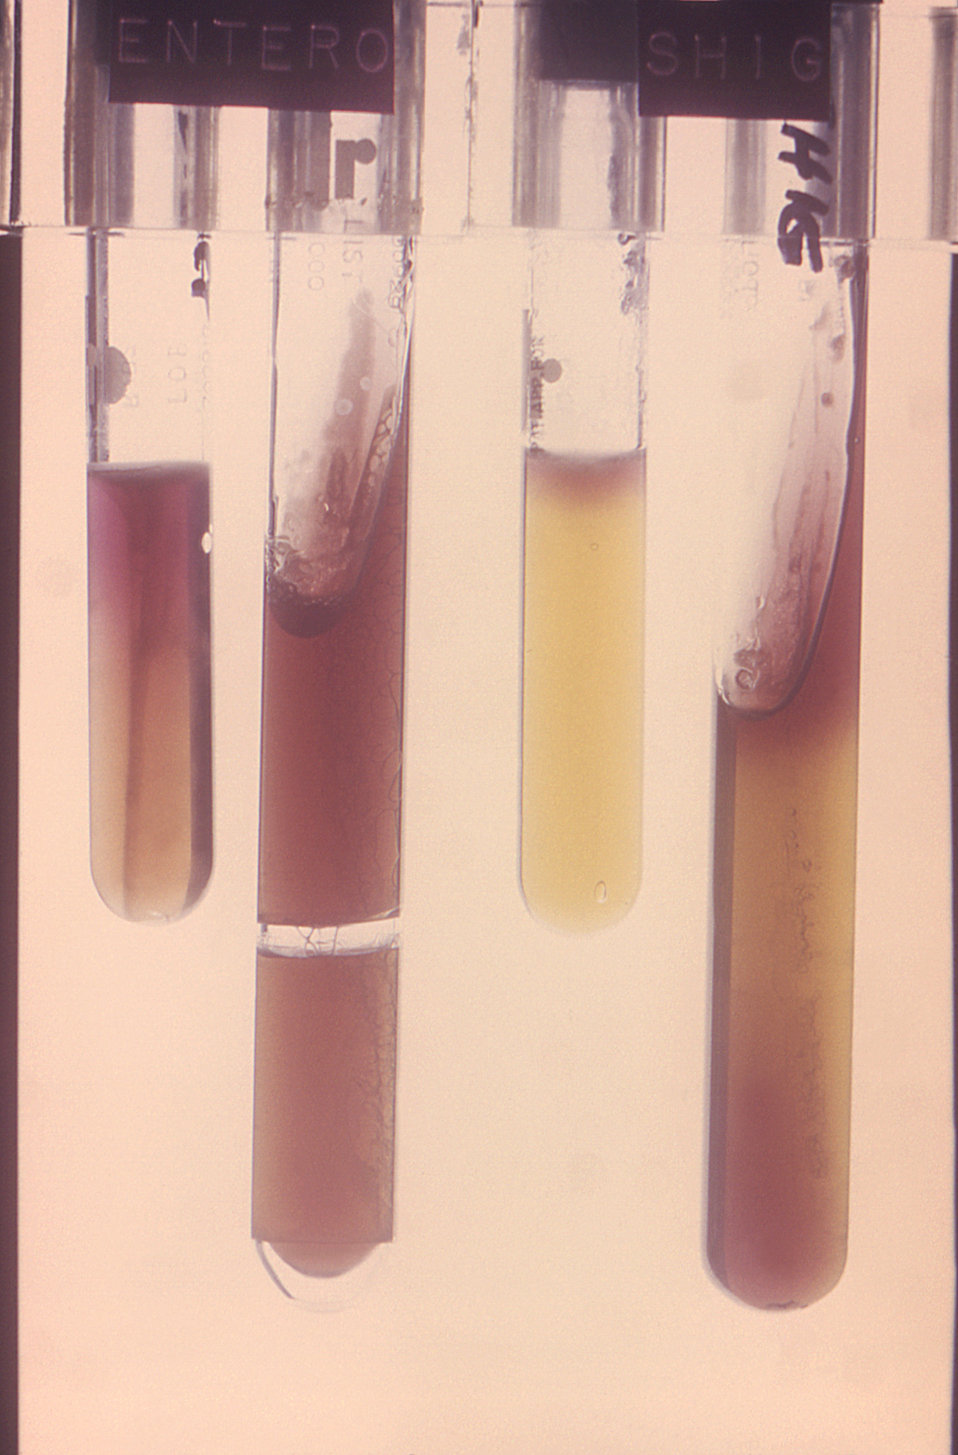 Used in the identification of Enterobacteriaceae bacteria, this image depicts four test tubes used in a Diagnostic Research, Inc., R/B Enter